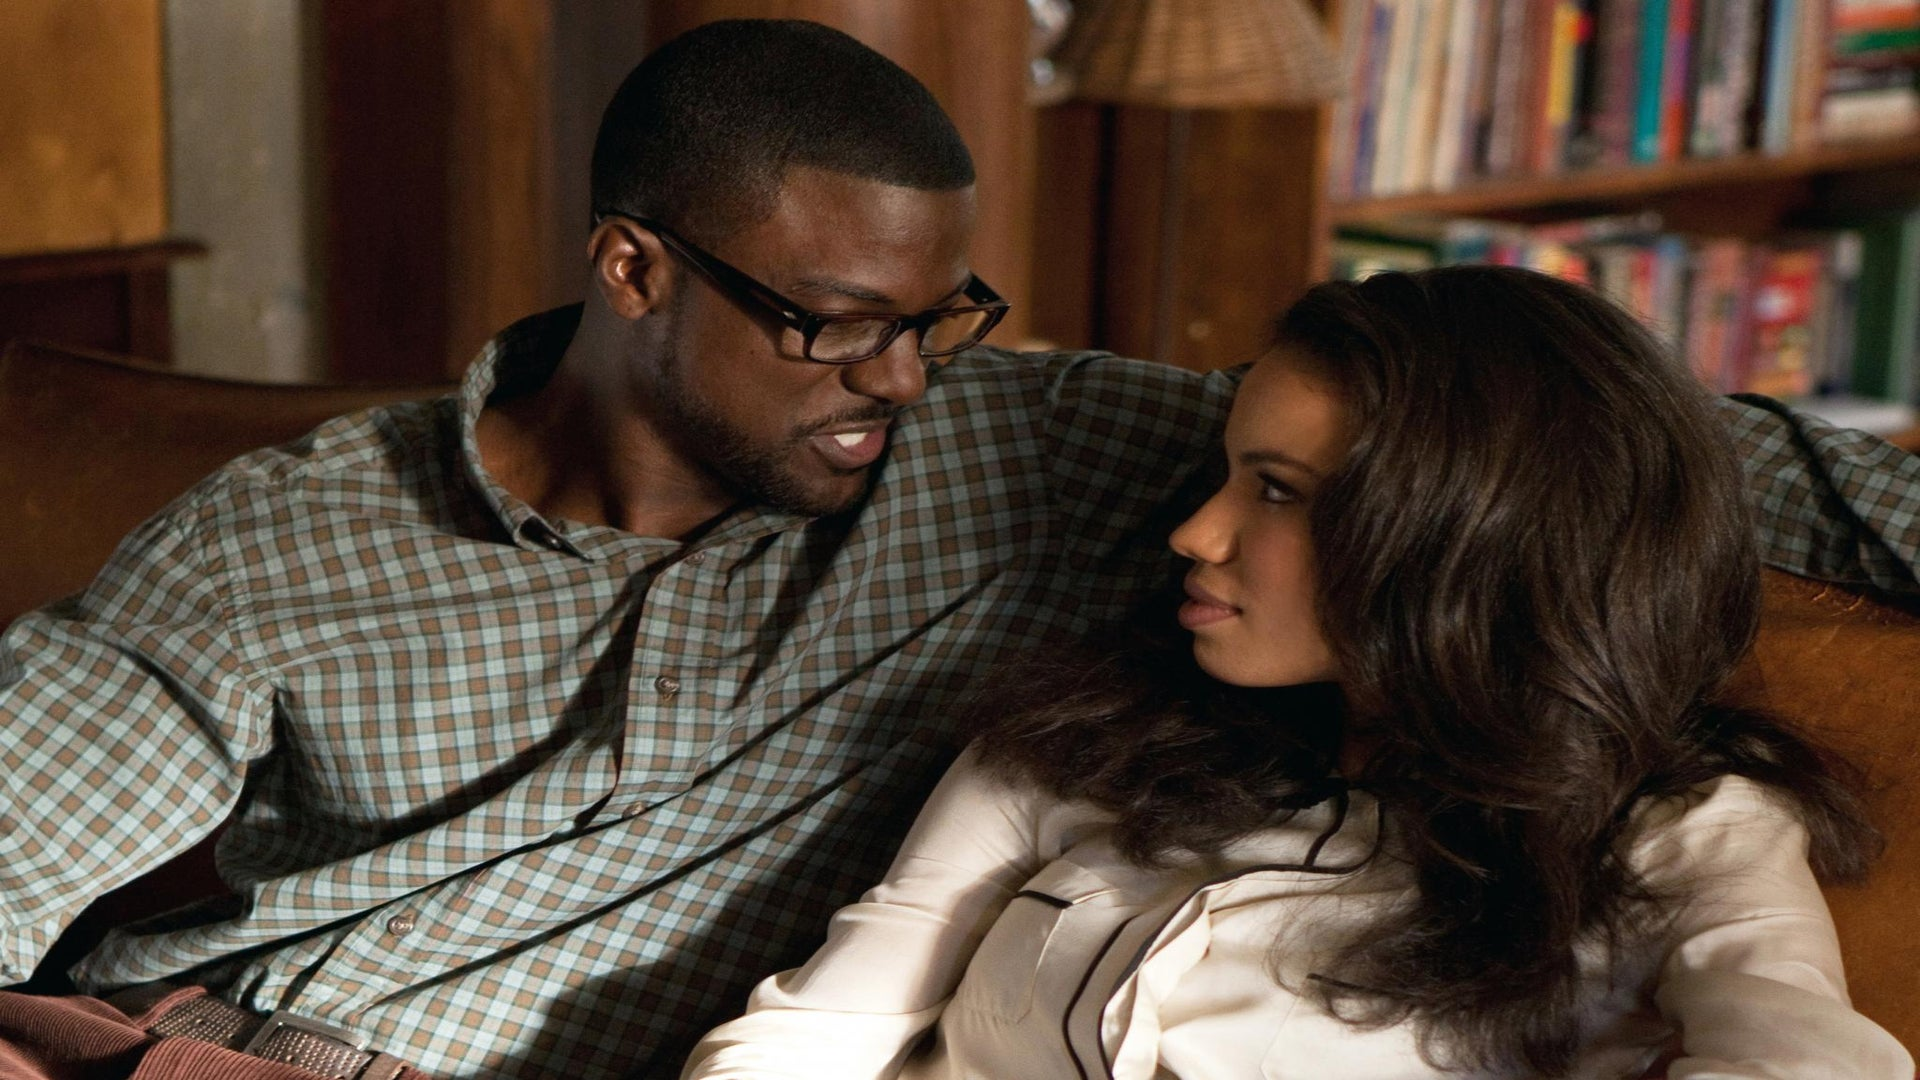 EXCLUSIVE First Look: Jurnee Smollett-Bell in 'Tyler Perry's Temptation'